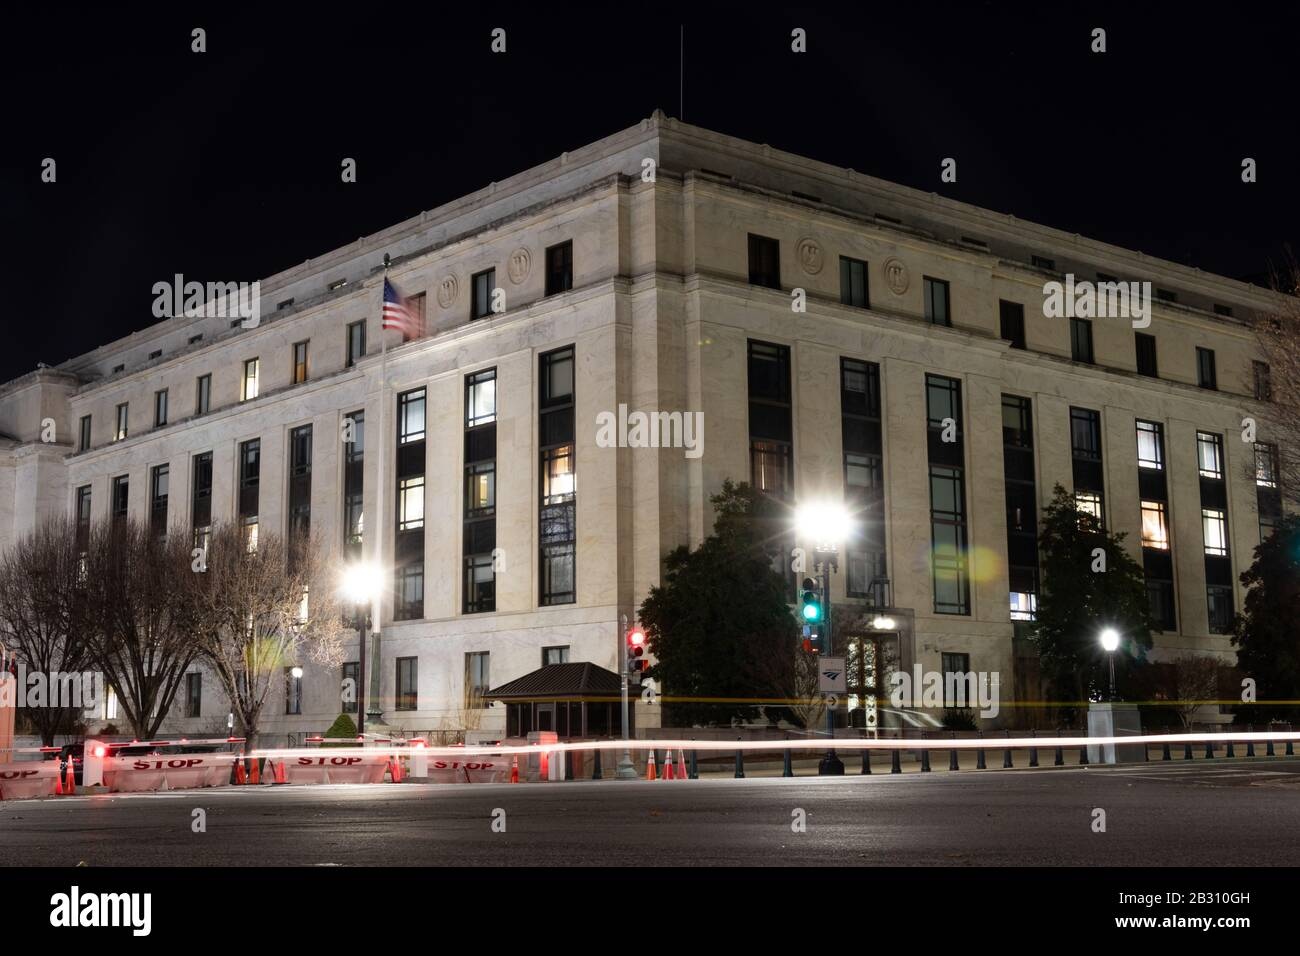 Dirksen Senate Office Building on Constitution Avenue across from the U.S. Capitol seen at night. Stock Photo